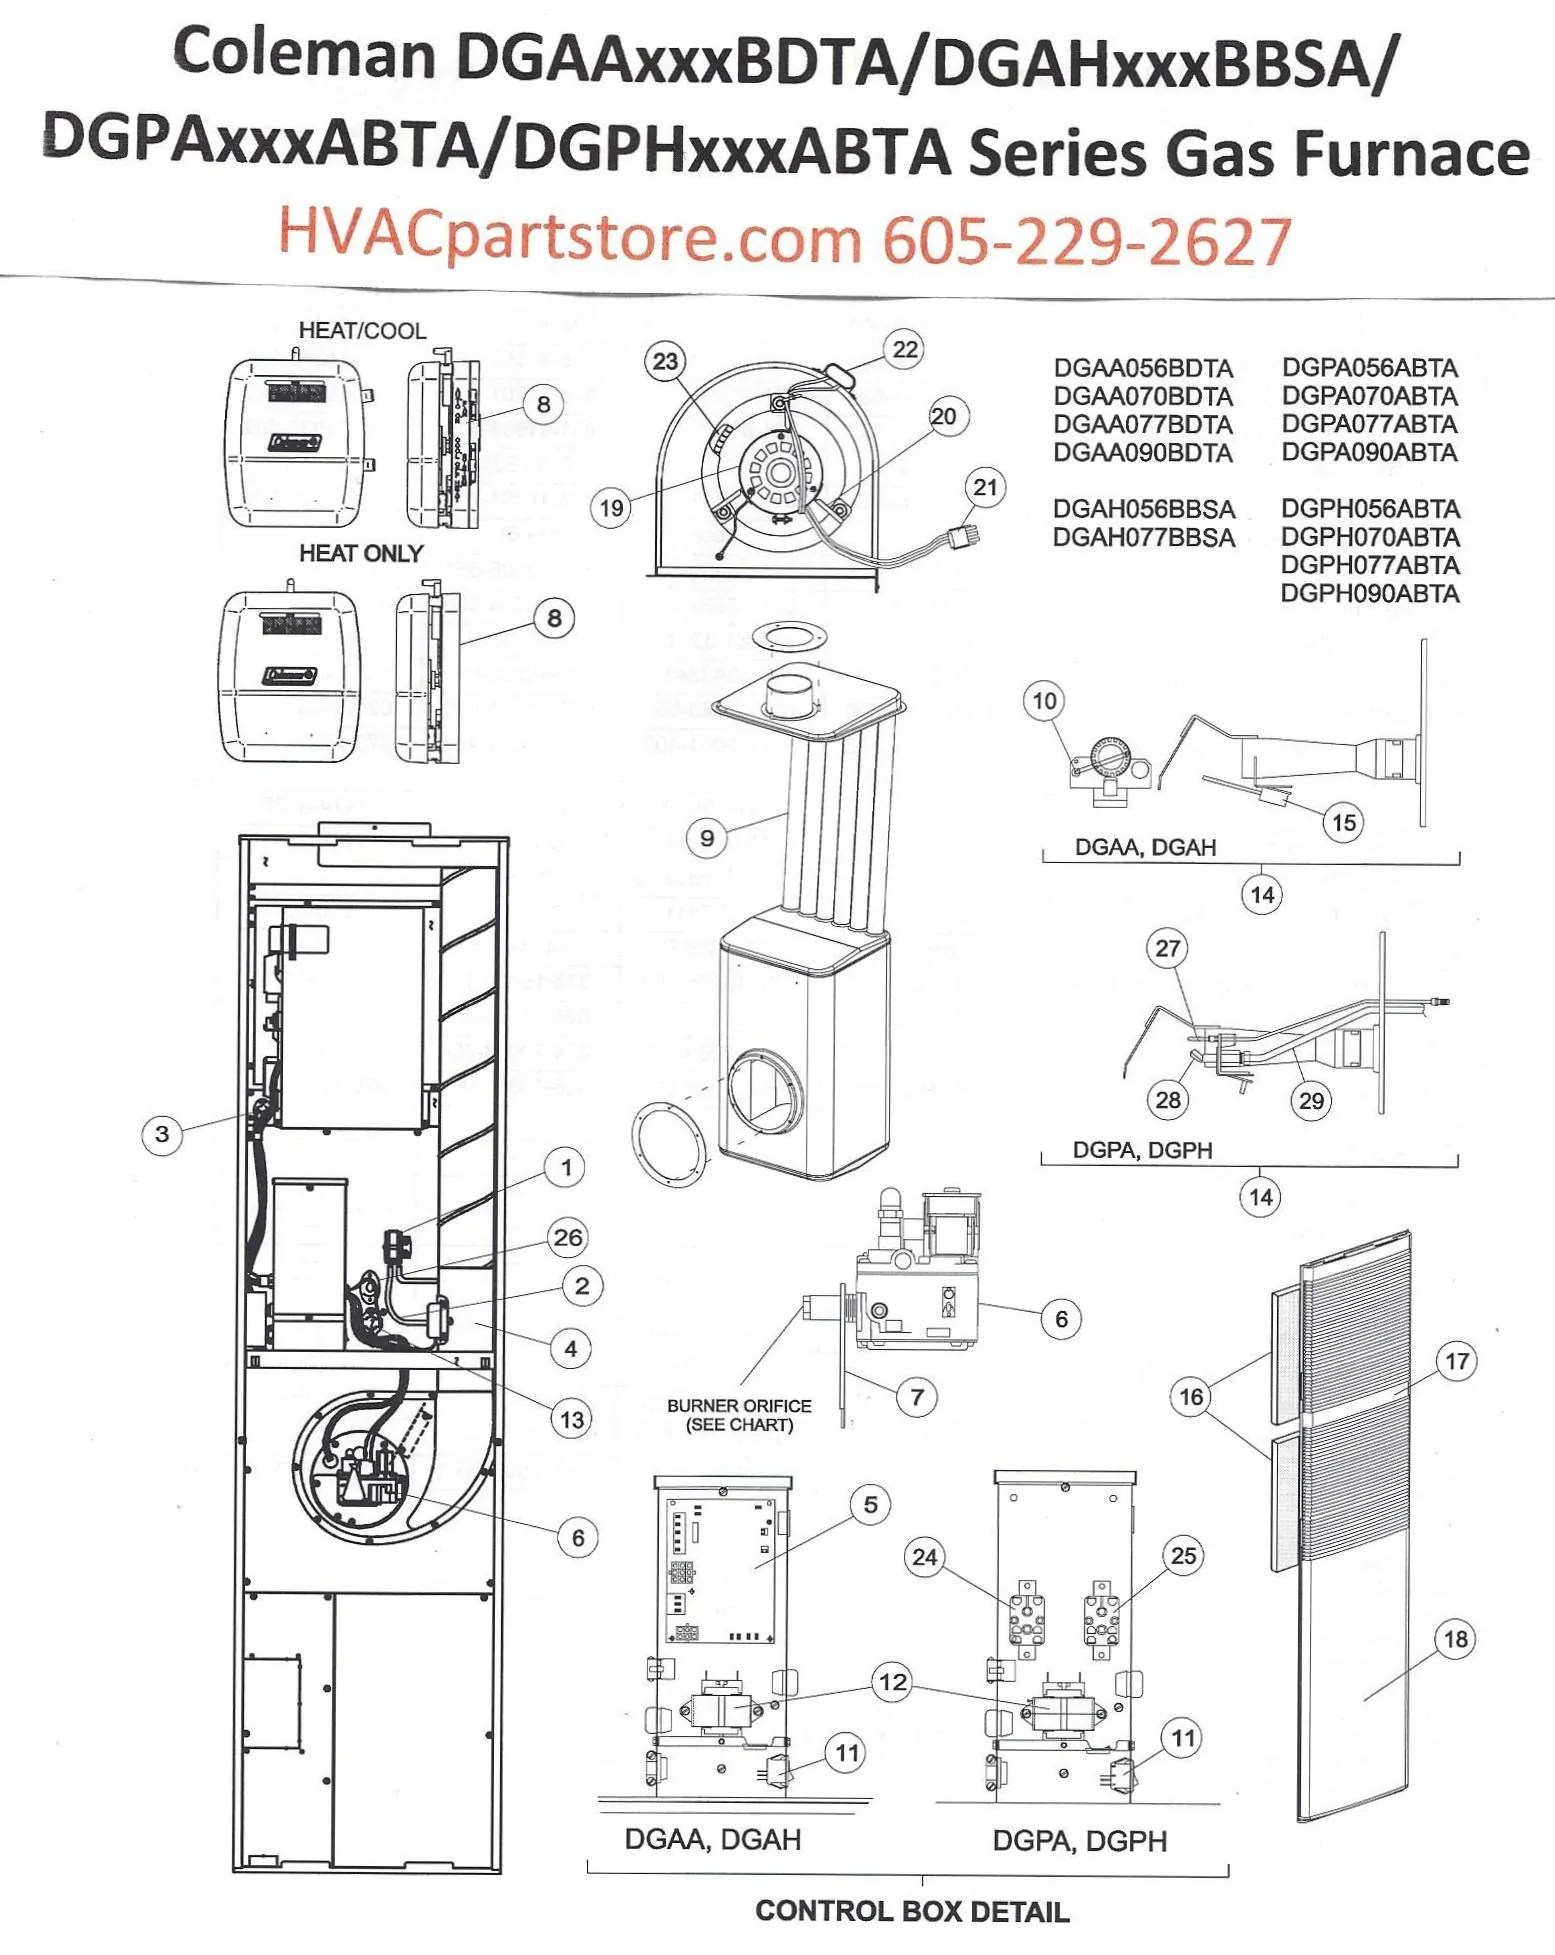 medium resolution of click here to view a manual for the dgaa056bdta which includes wiring diagrams